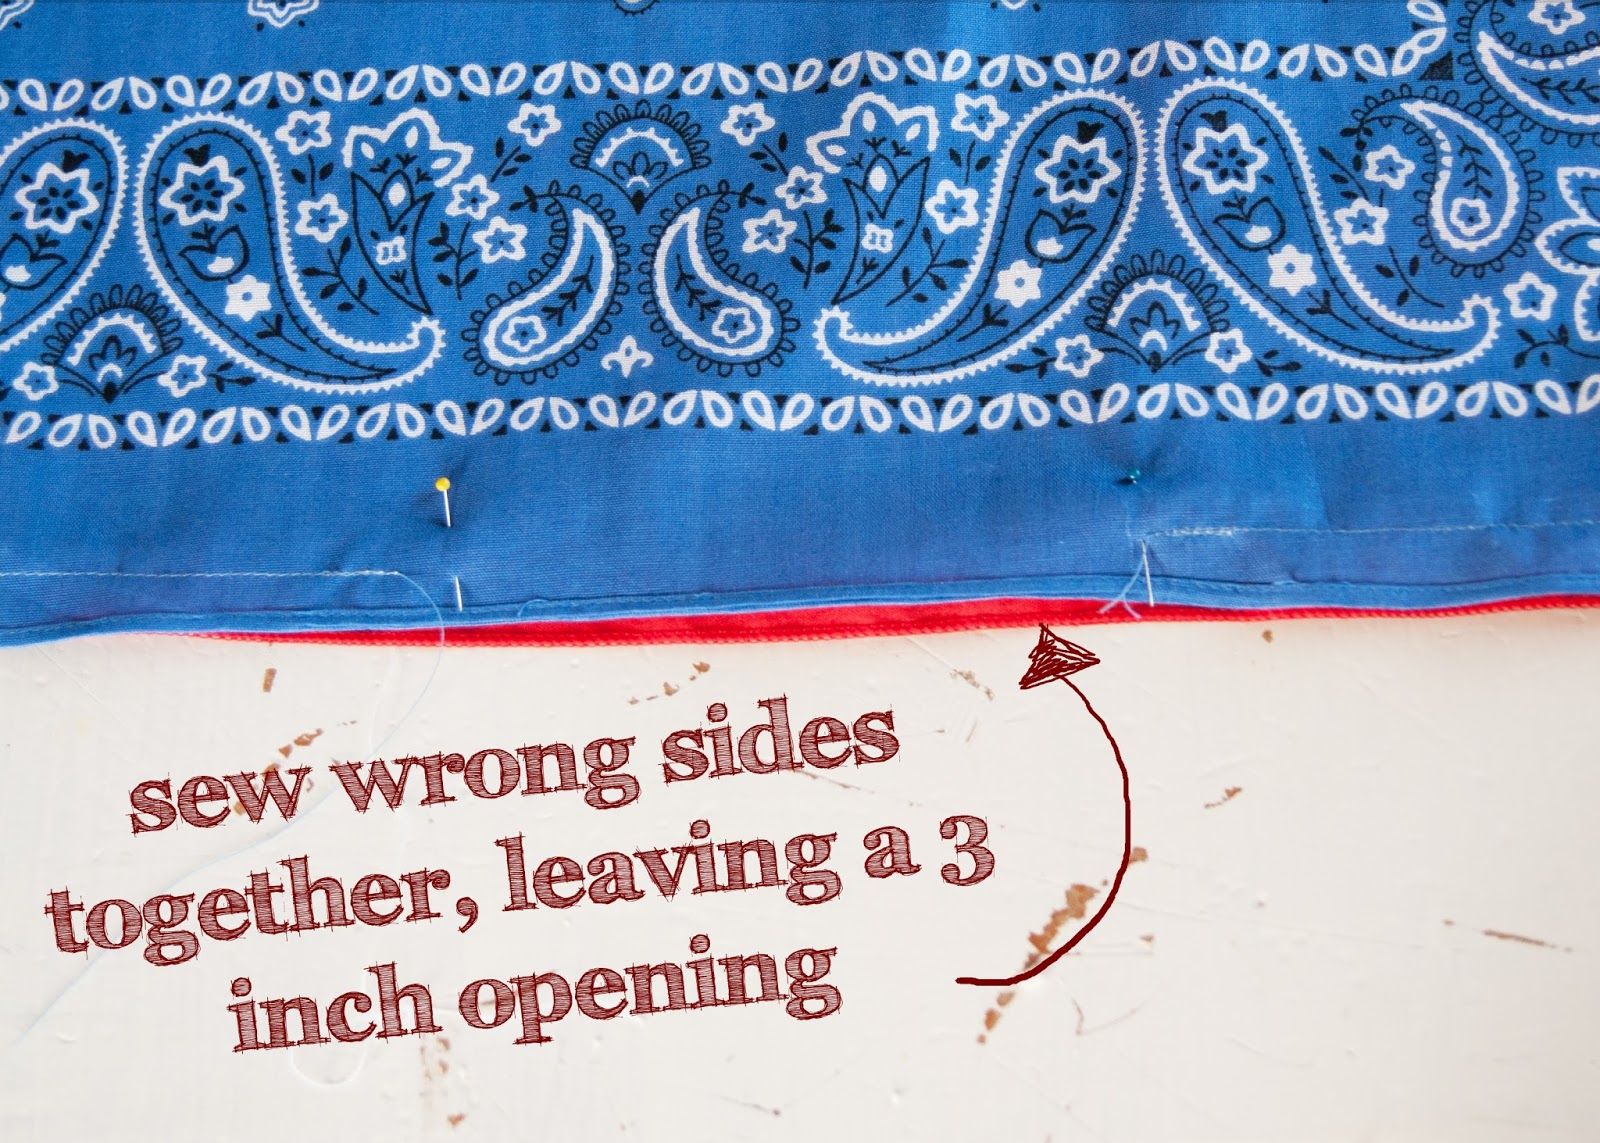 Step two : Sew wrong sides of handkerchiefs together, leaving a three inch opening